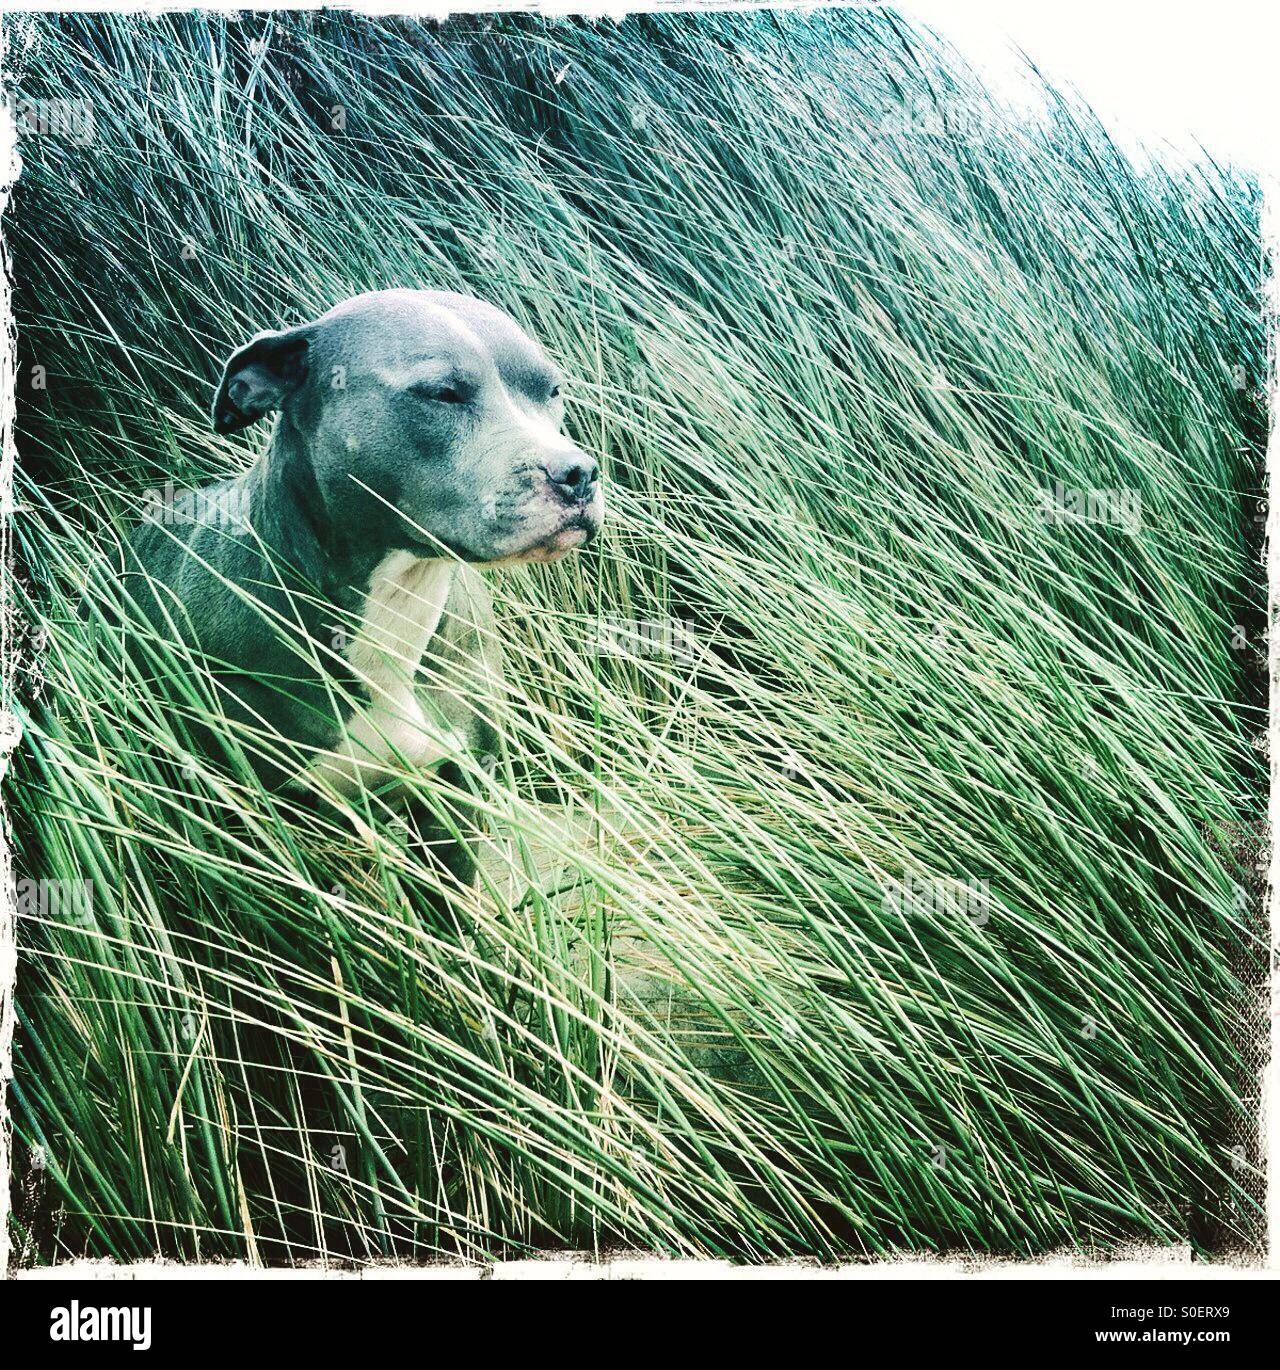 Portrait of dog in blowing sea grass - Stock Image